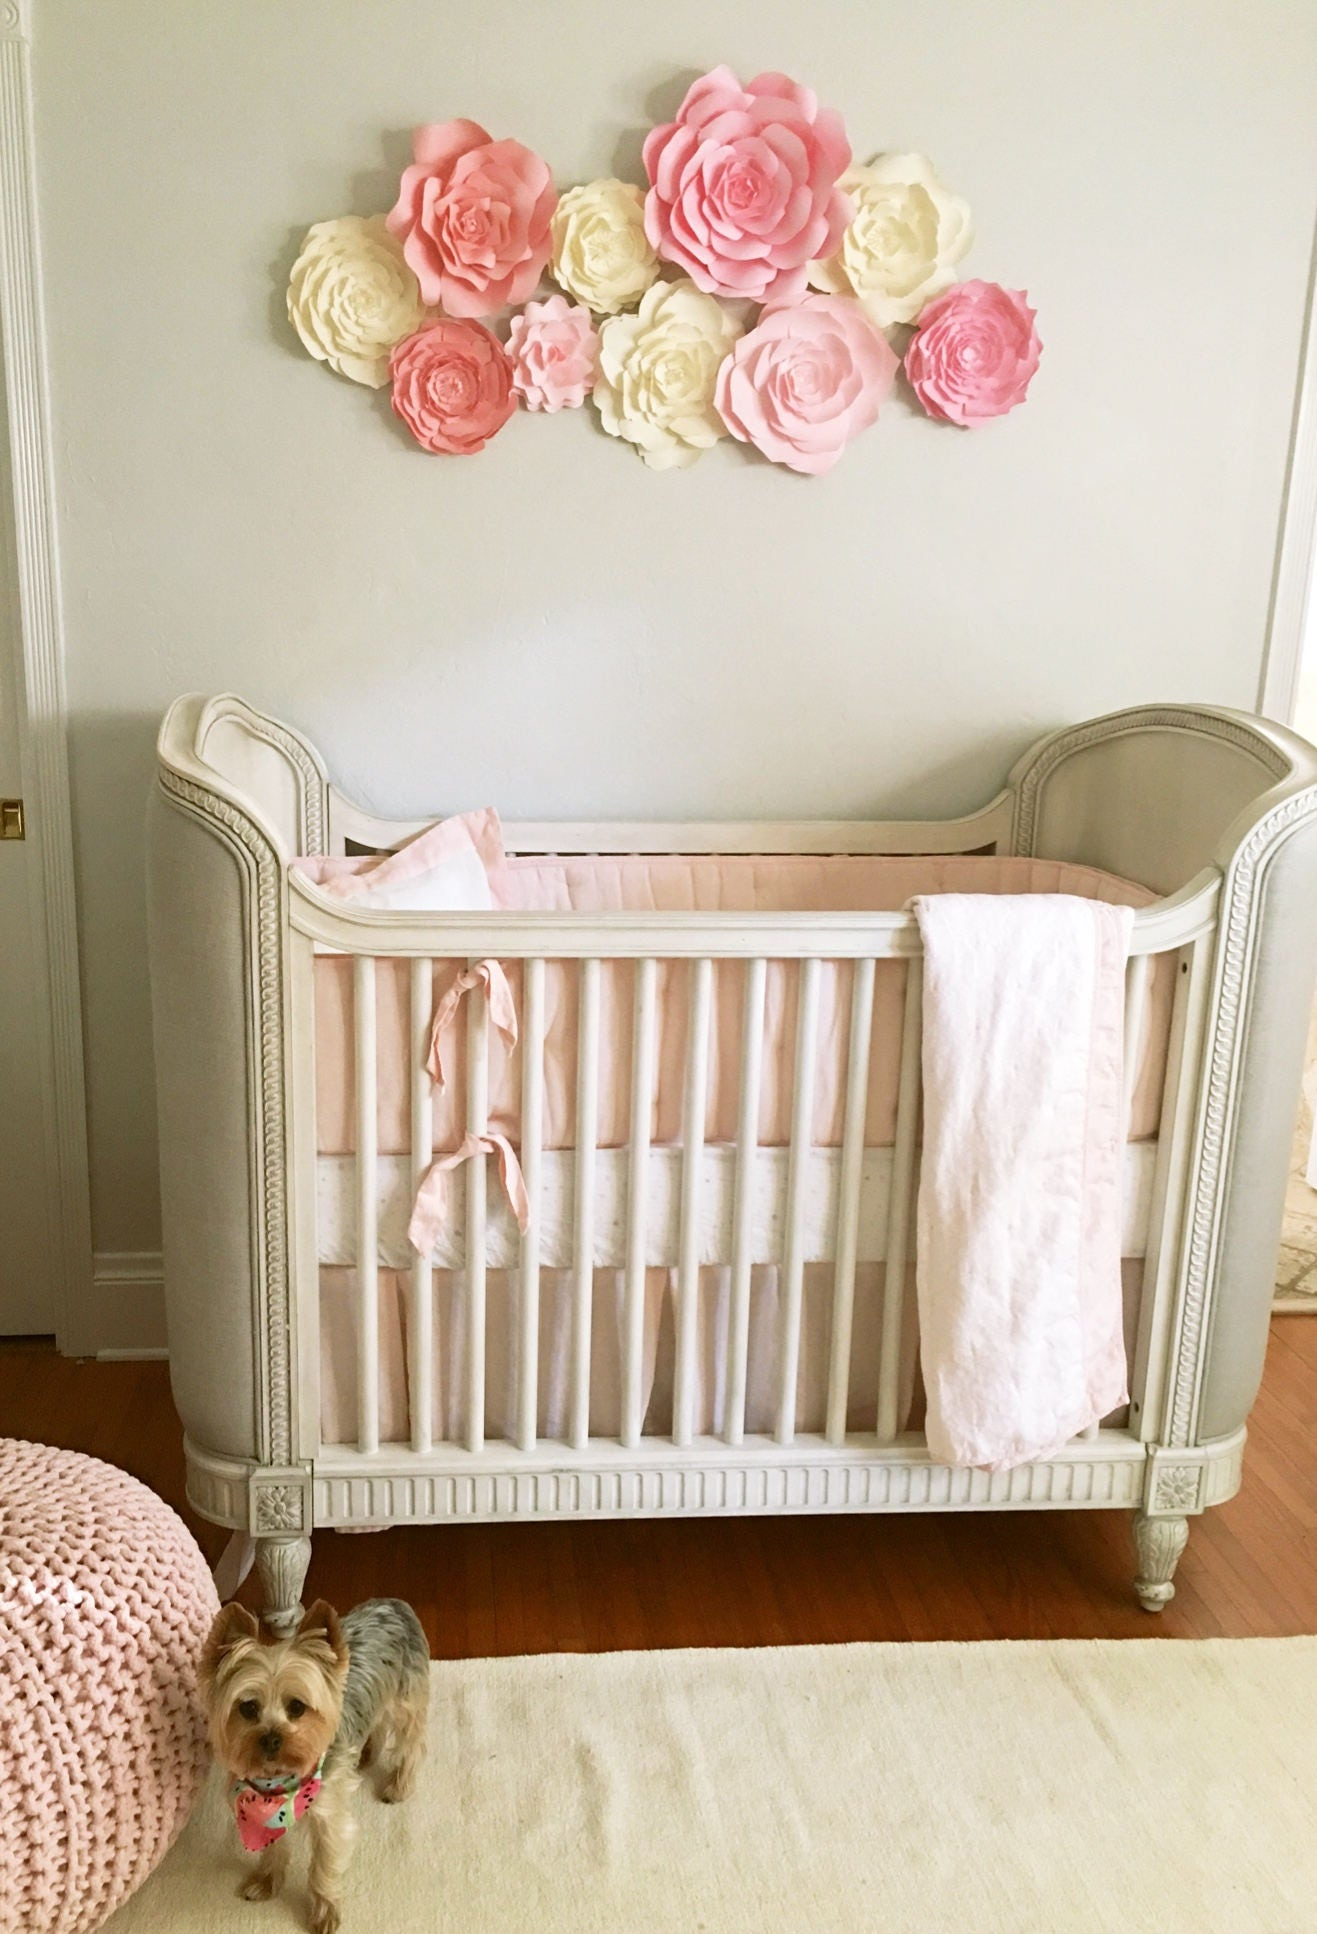 Baby Room Accessories: Baby Nursery Wall Decor Paper Flowers For Girls Nursery